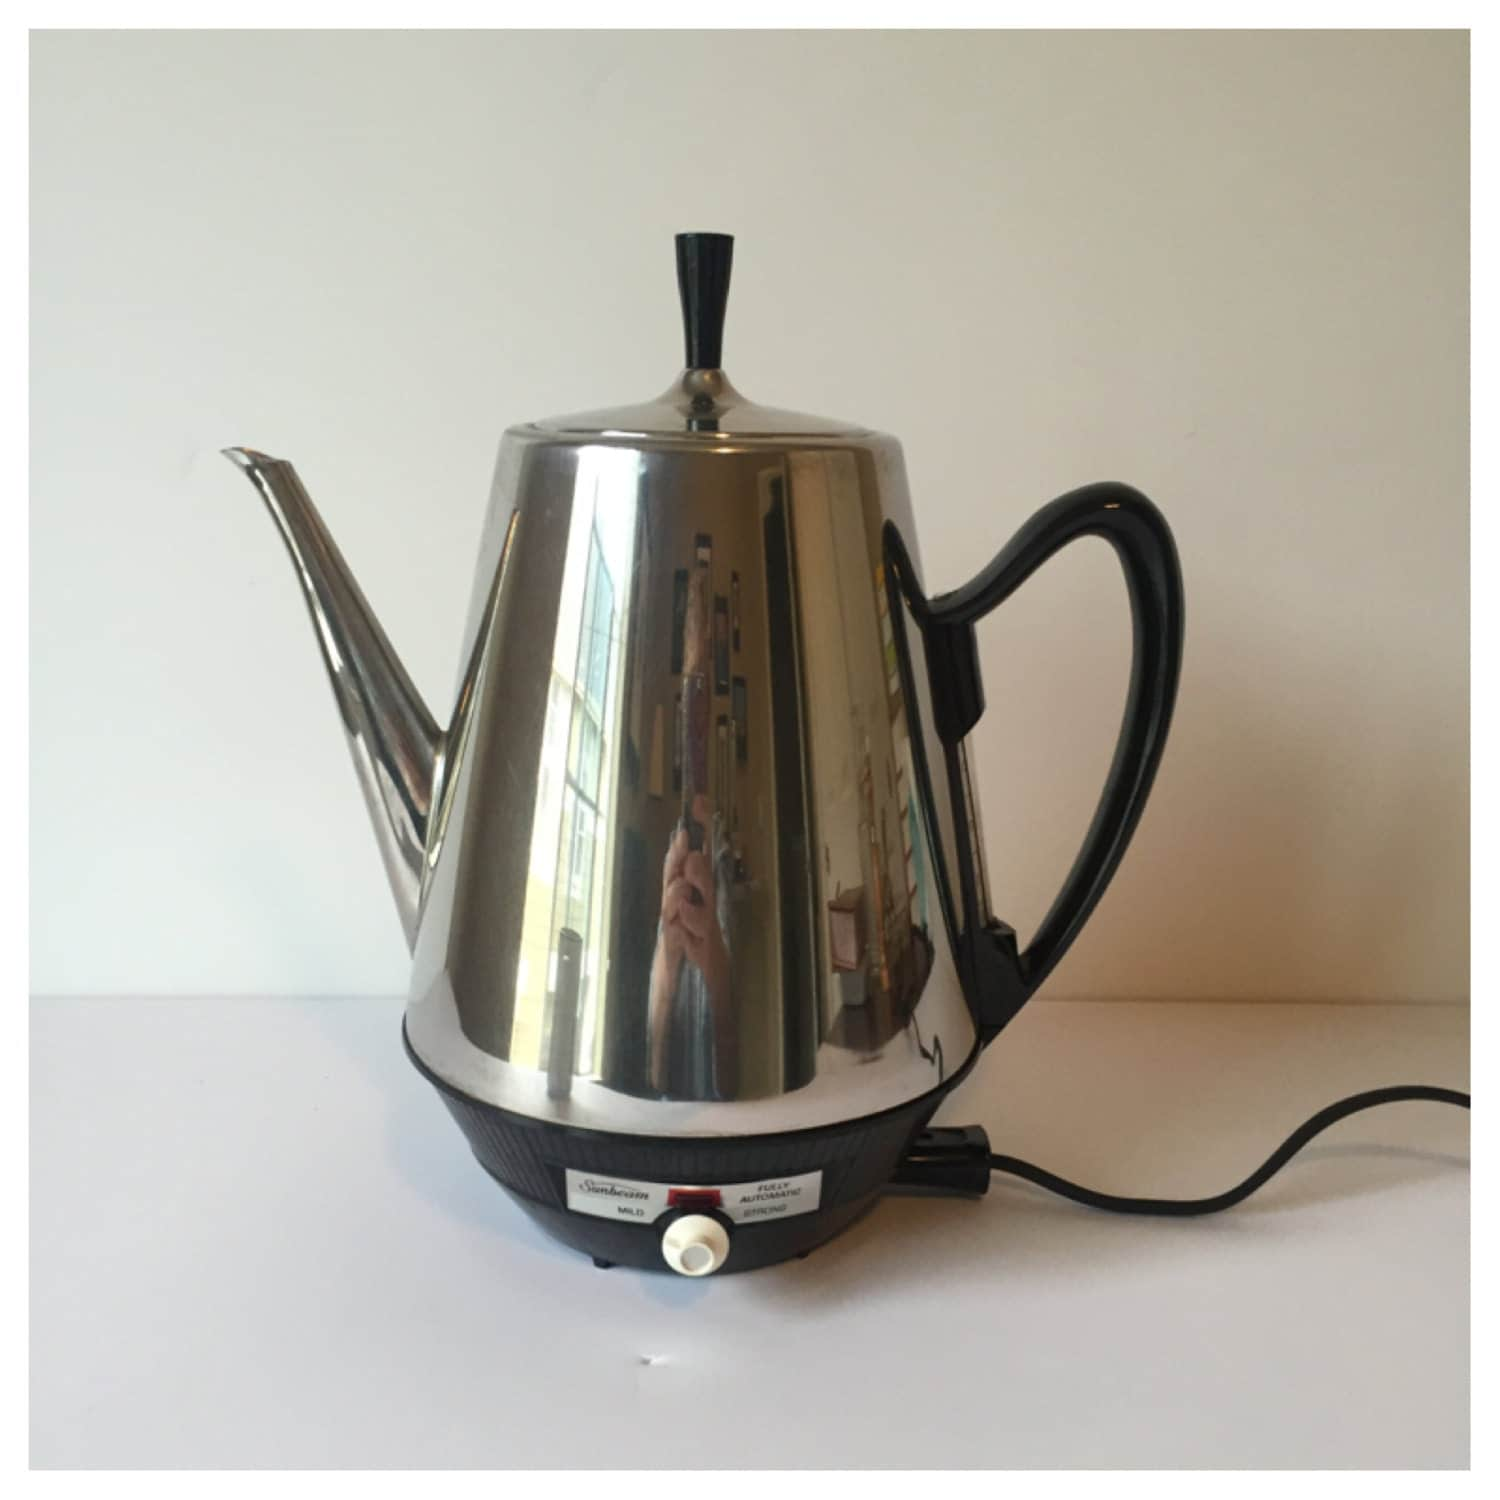 Vintage Sunbeam Electric Coffee Pot Chrome Percolator Coffee